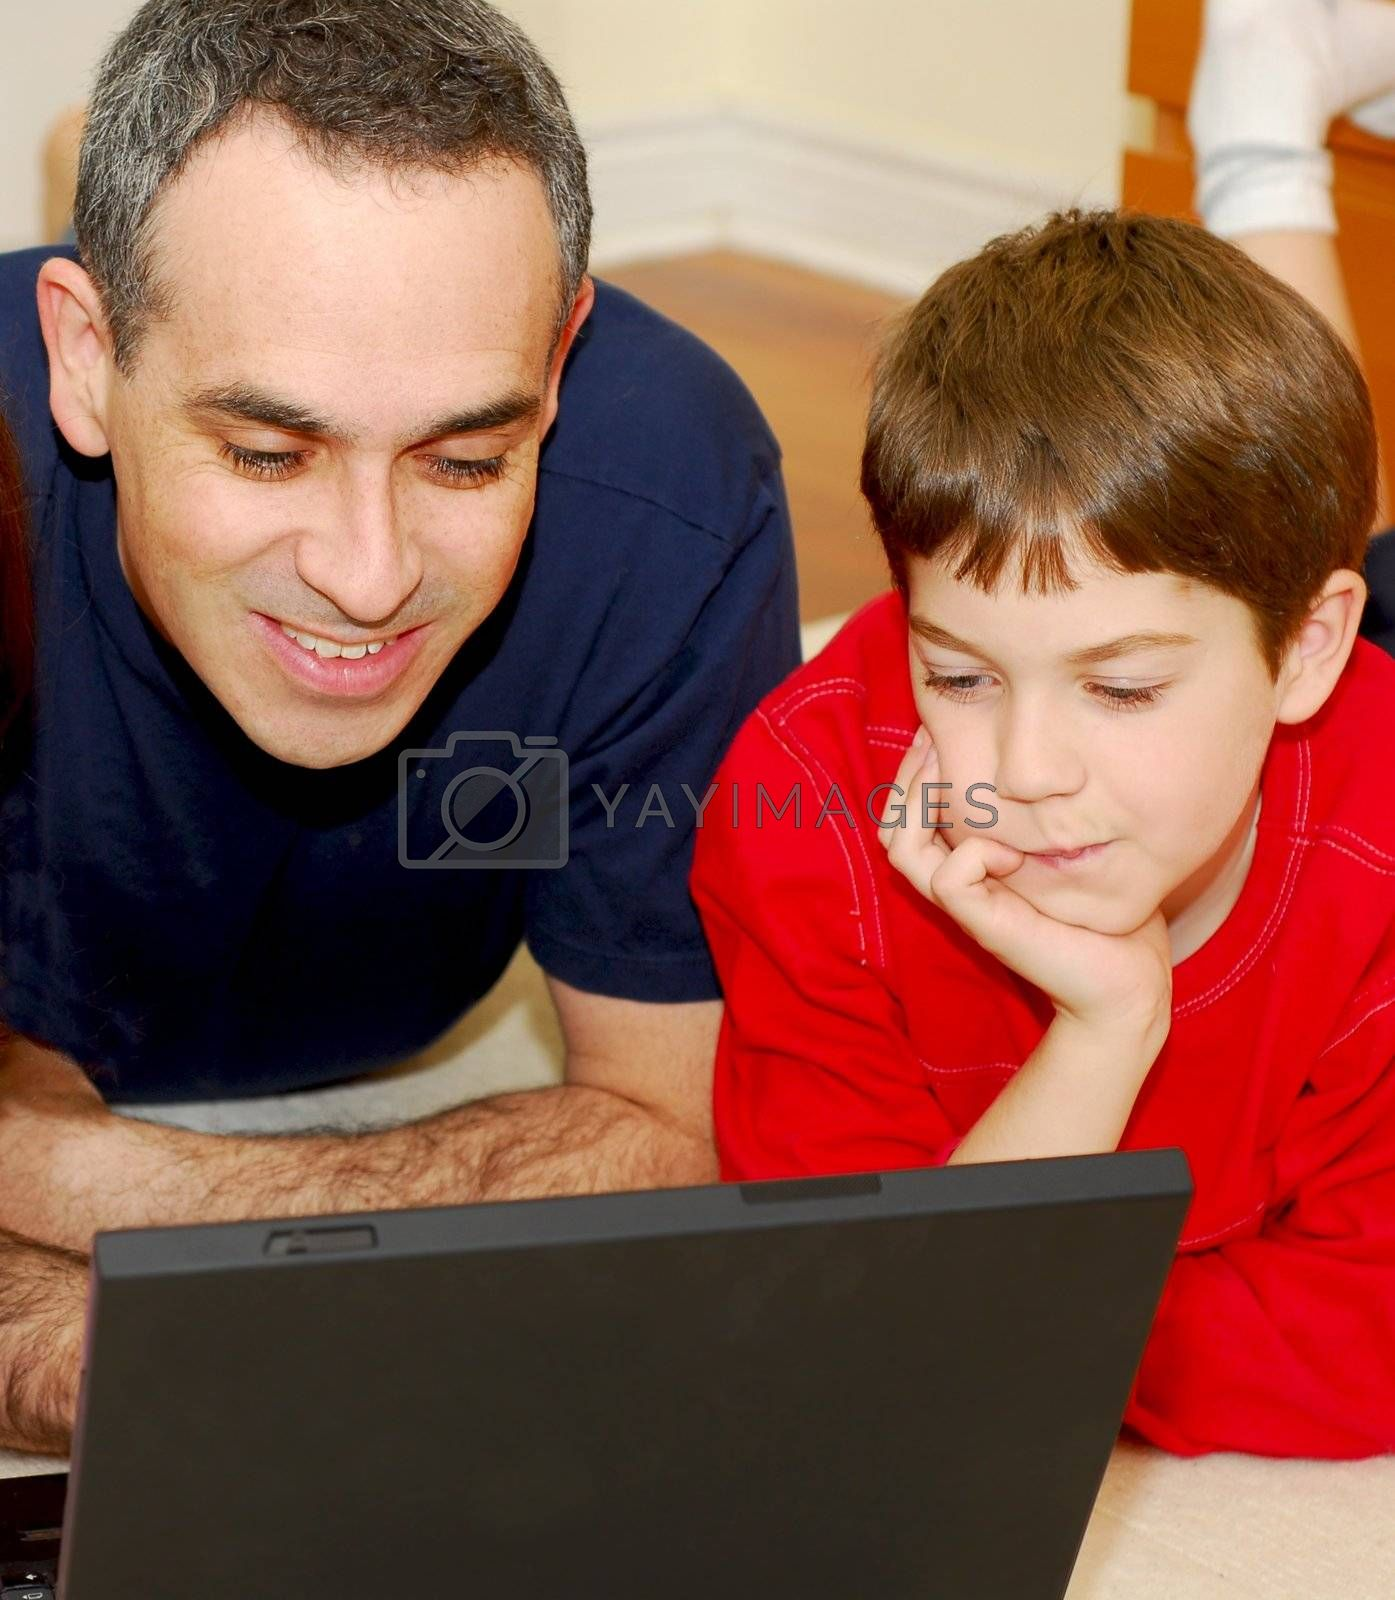 Father son computer by elenathewise